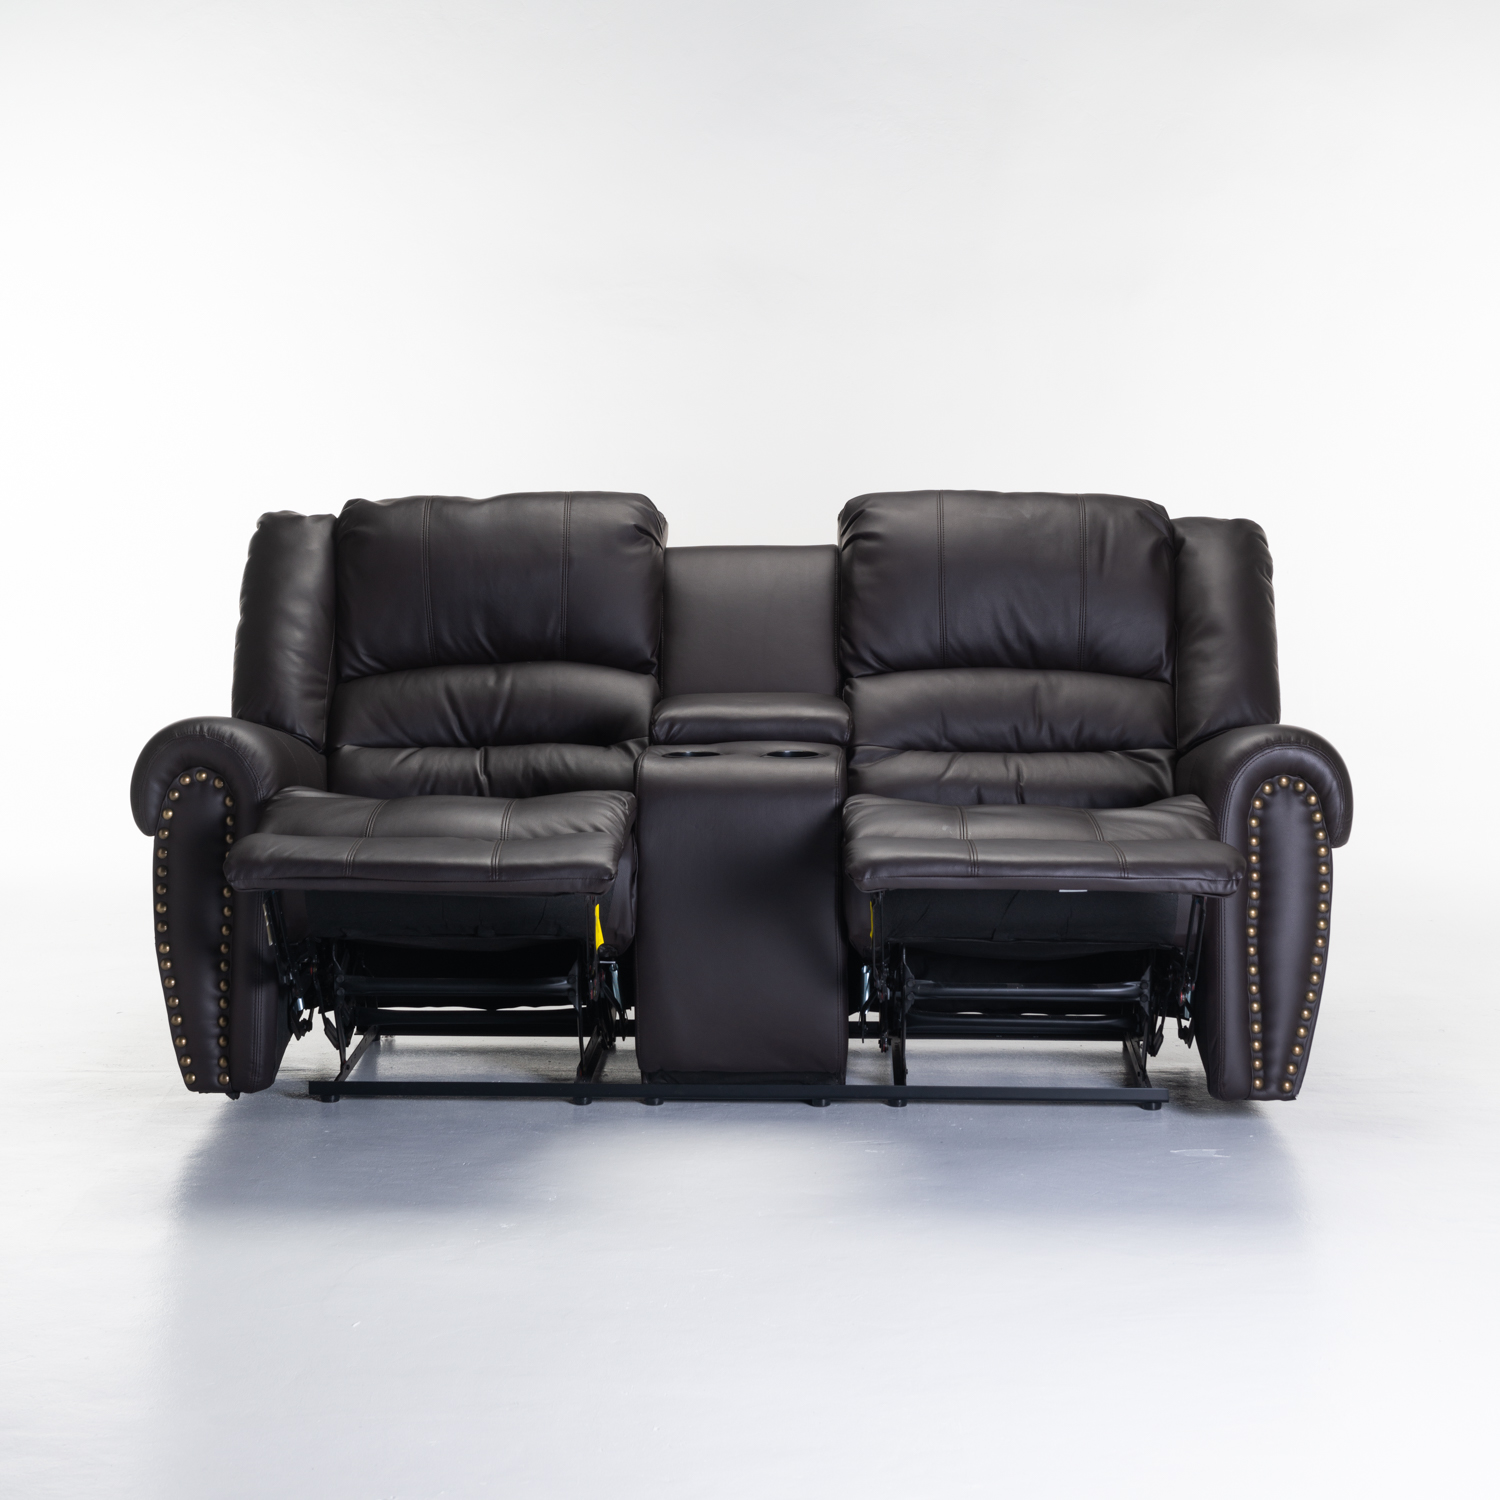 GINO BONDED LEATHER UPPER 2 SEATER WITH CONSOLE